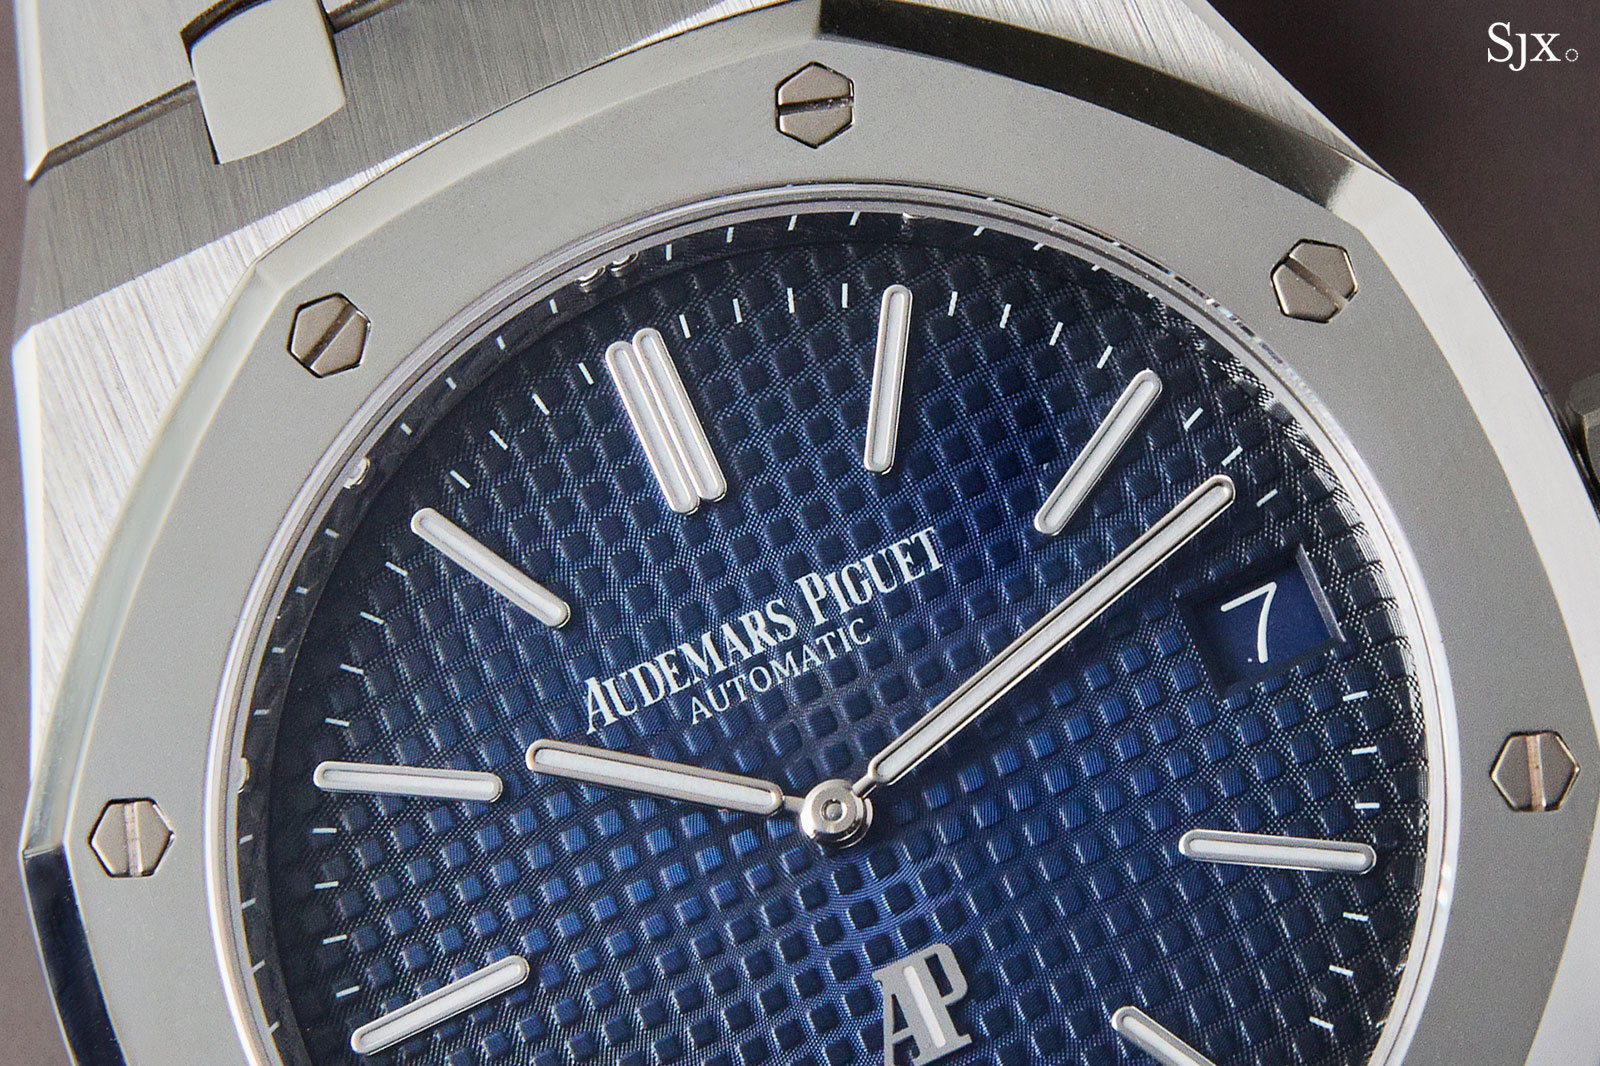 Audemars Piguet Royal Oak Ti platinum 15202IP 1